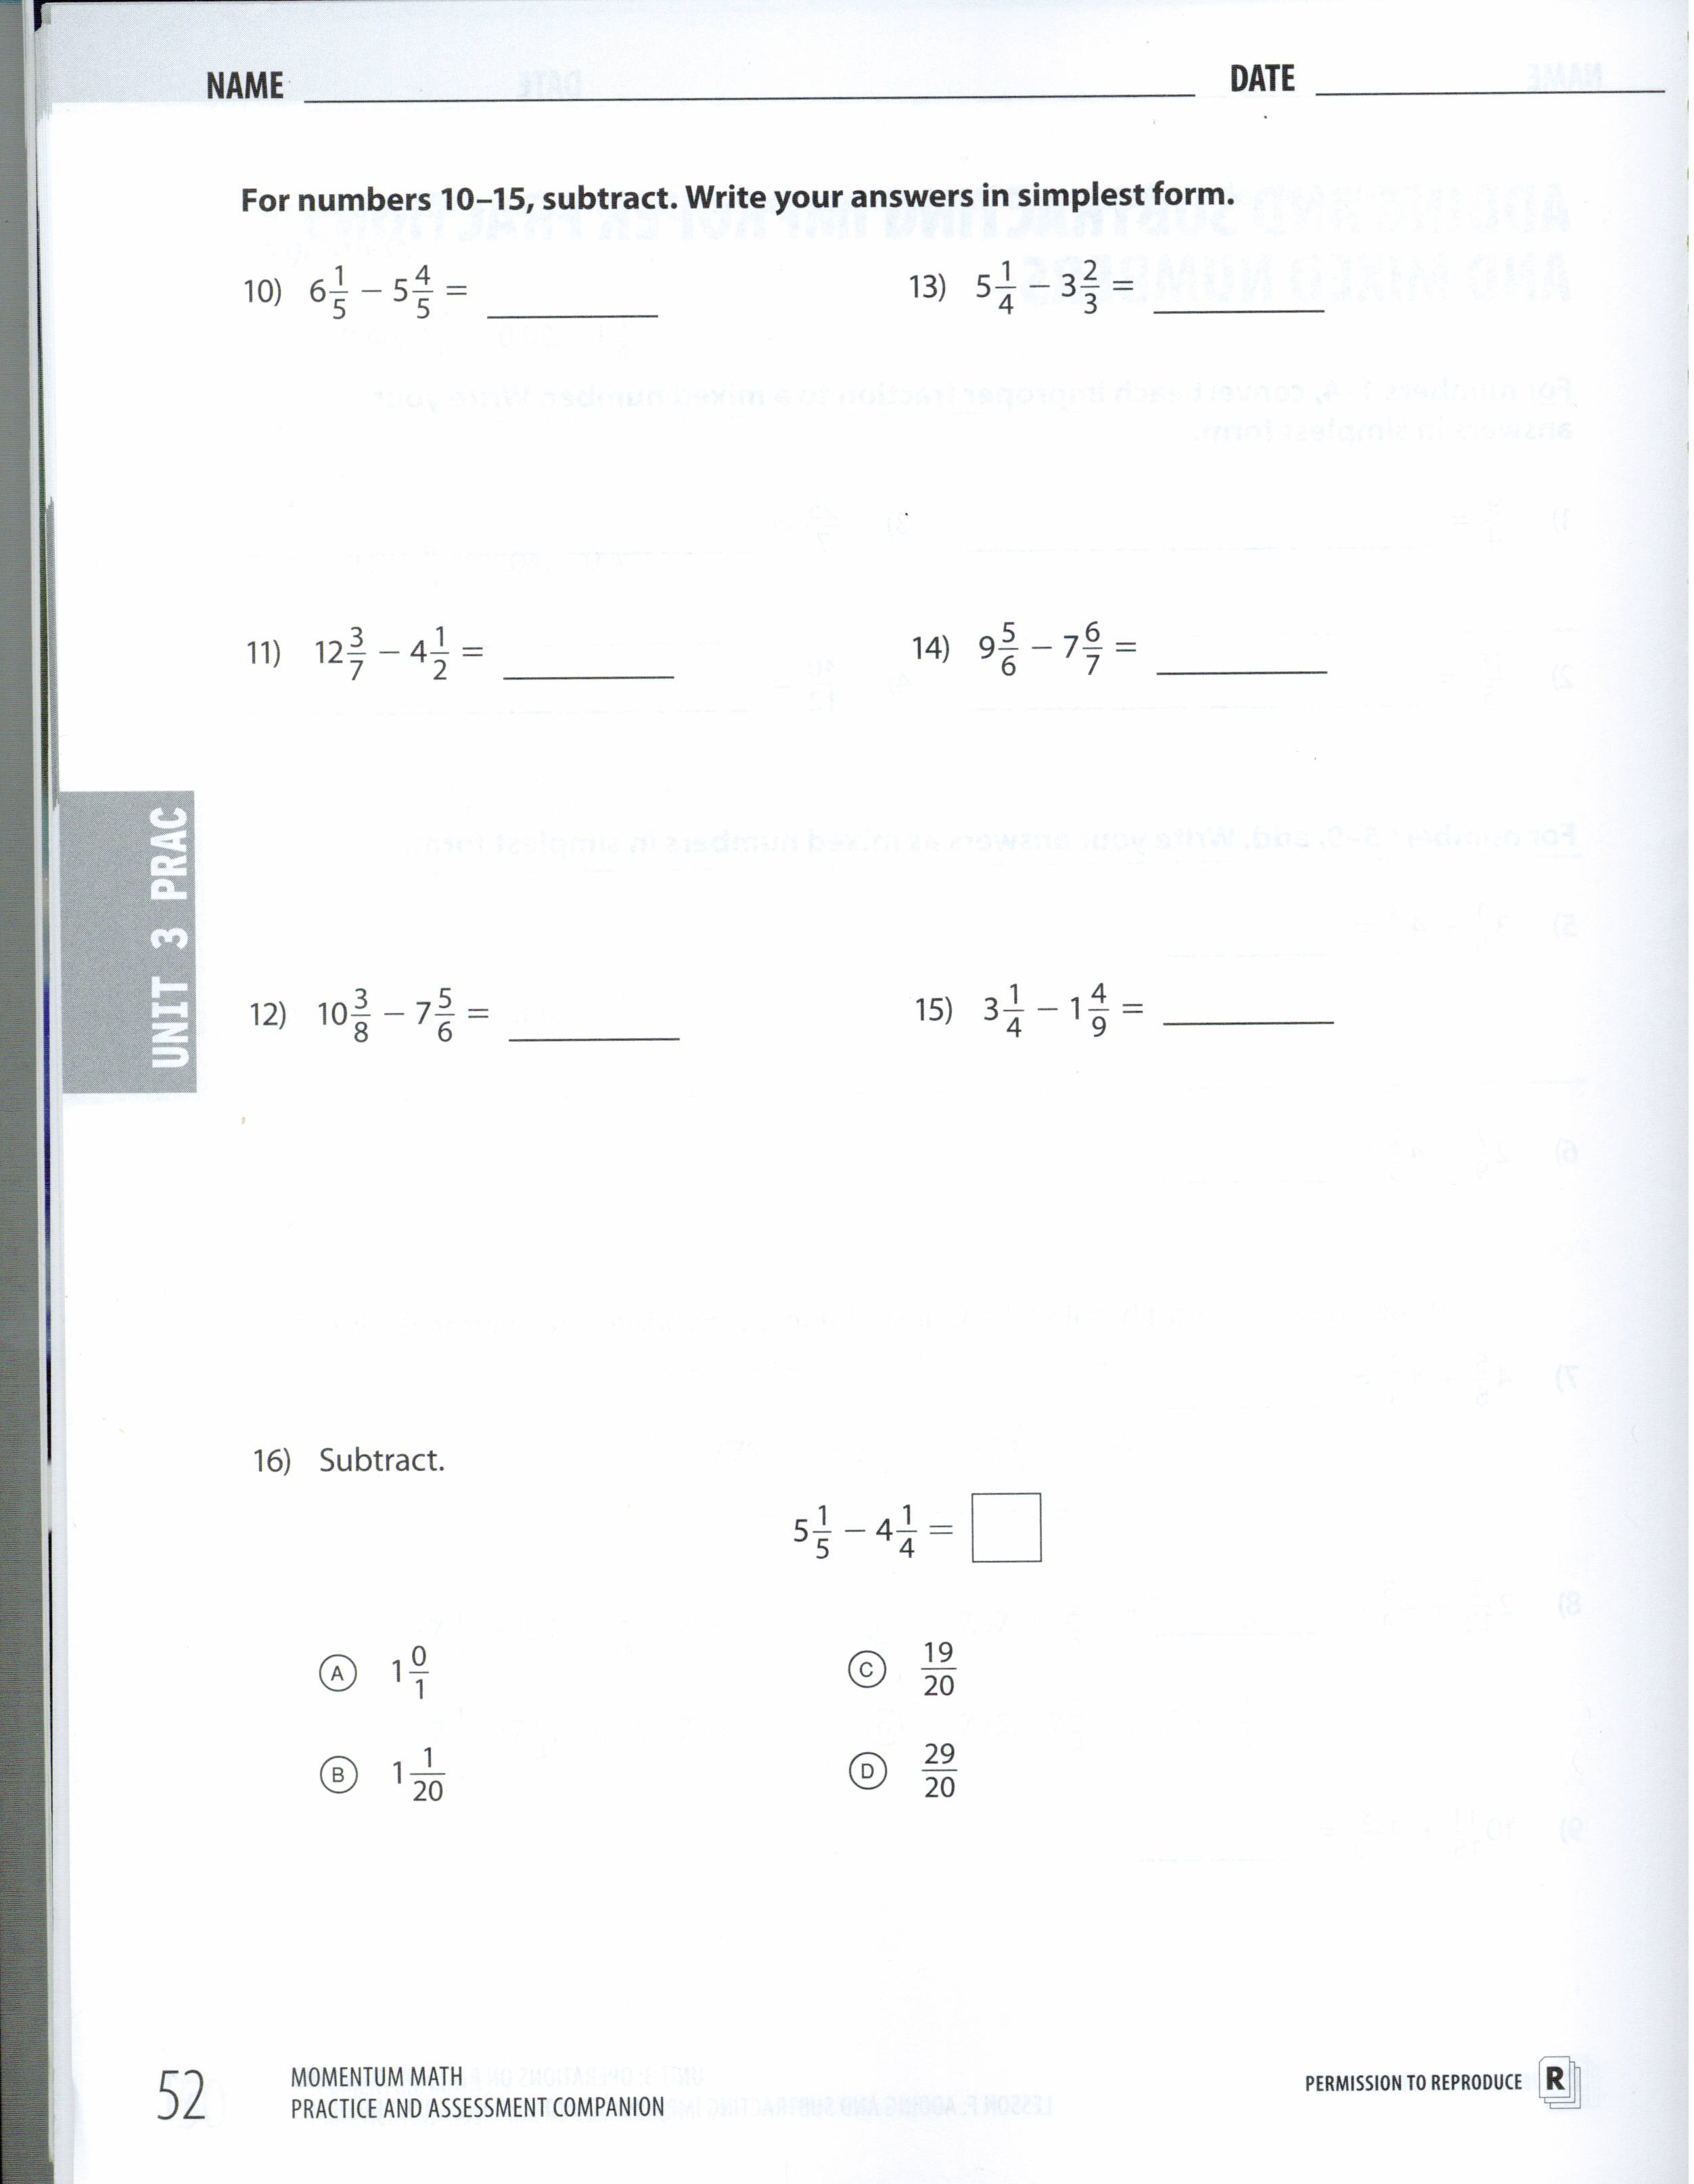 Homework Assignments Sophia Burns Mathematics – Adding and Subtracting Improper Fractions Worksheet